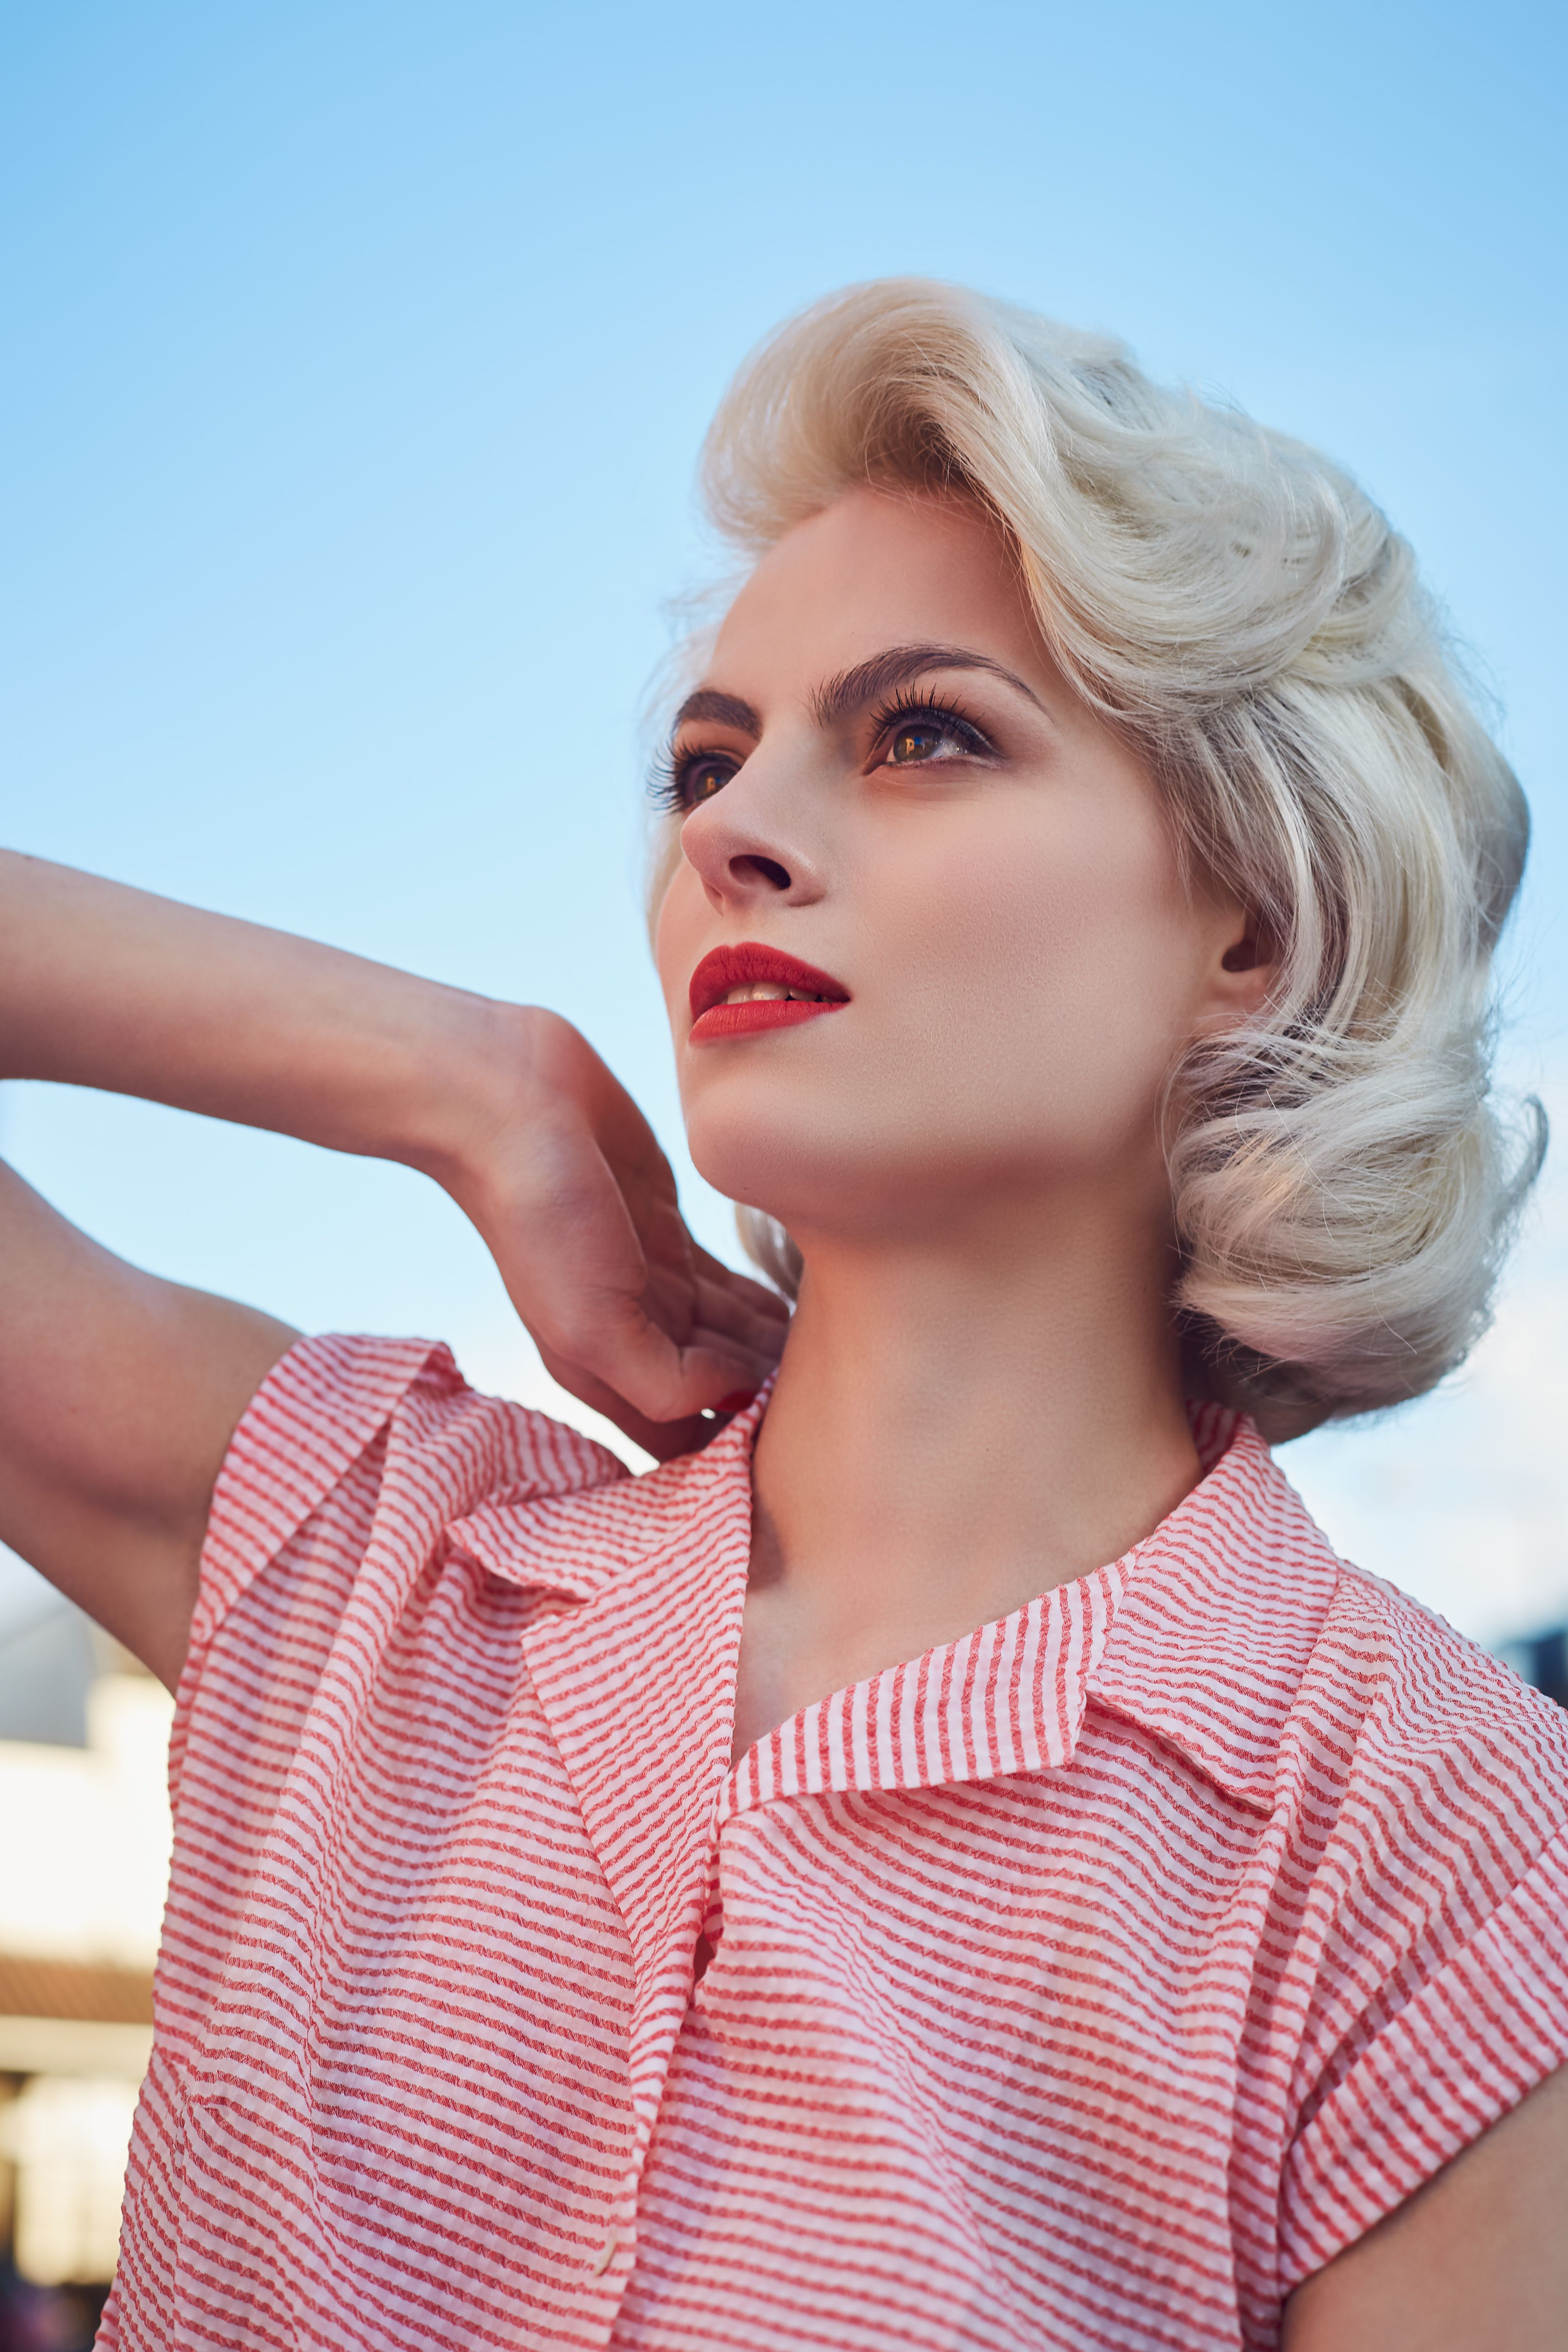 50s makeup and hair recreate monroe style Marilyn